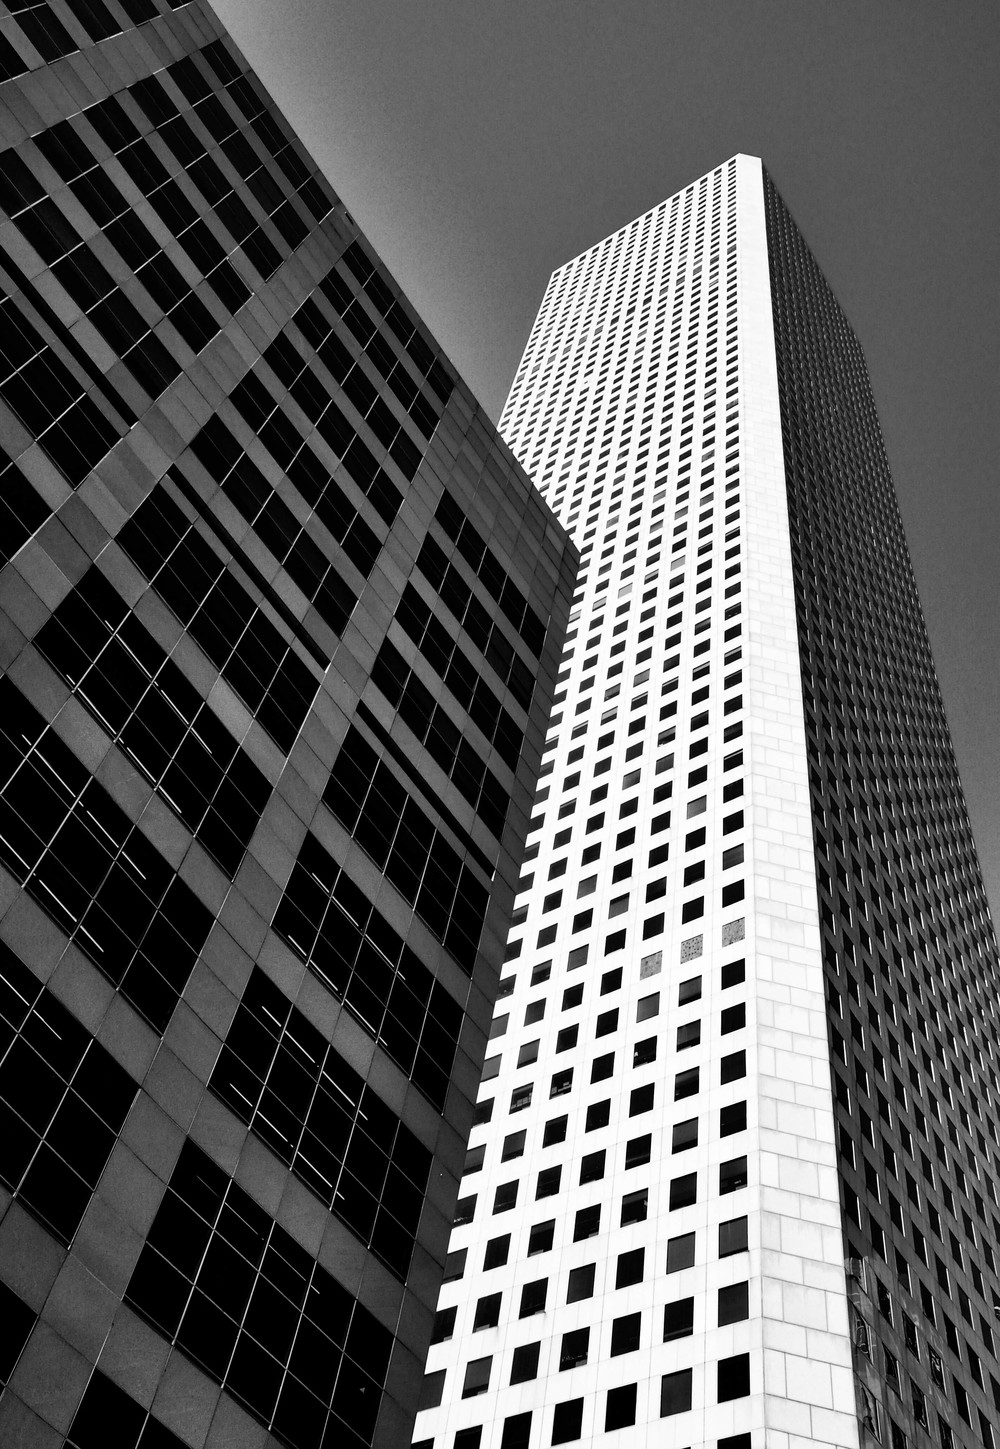 Squares and Rectangles  Houston, TX  ©Copyright 2015 Bridget Barnes